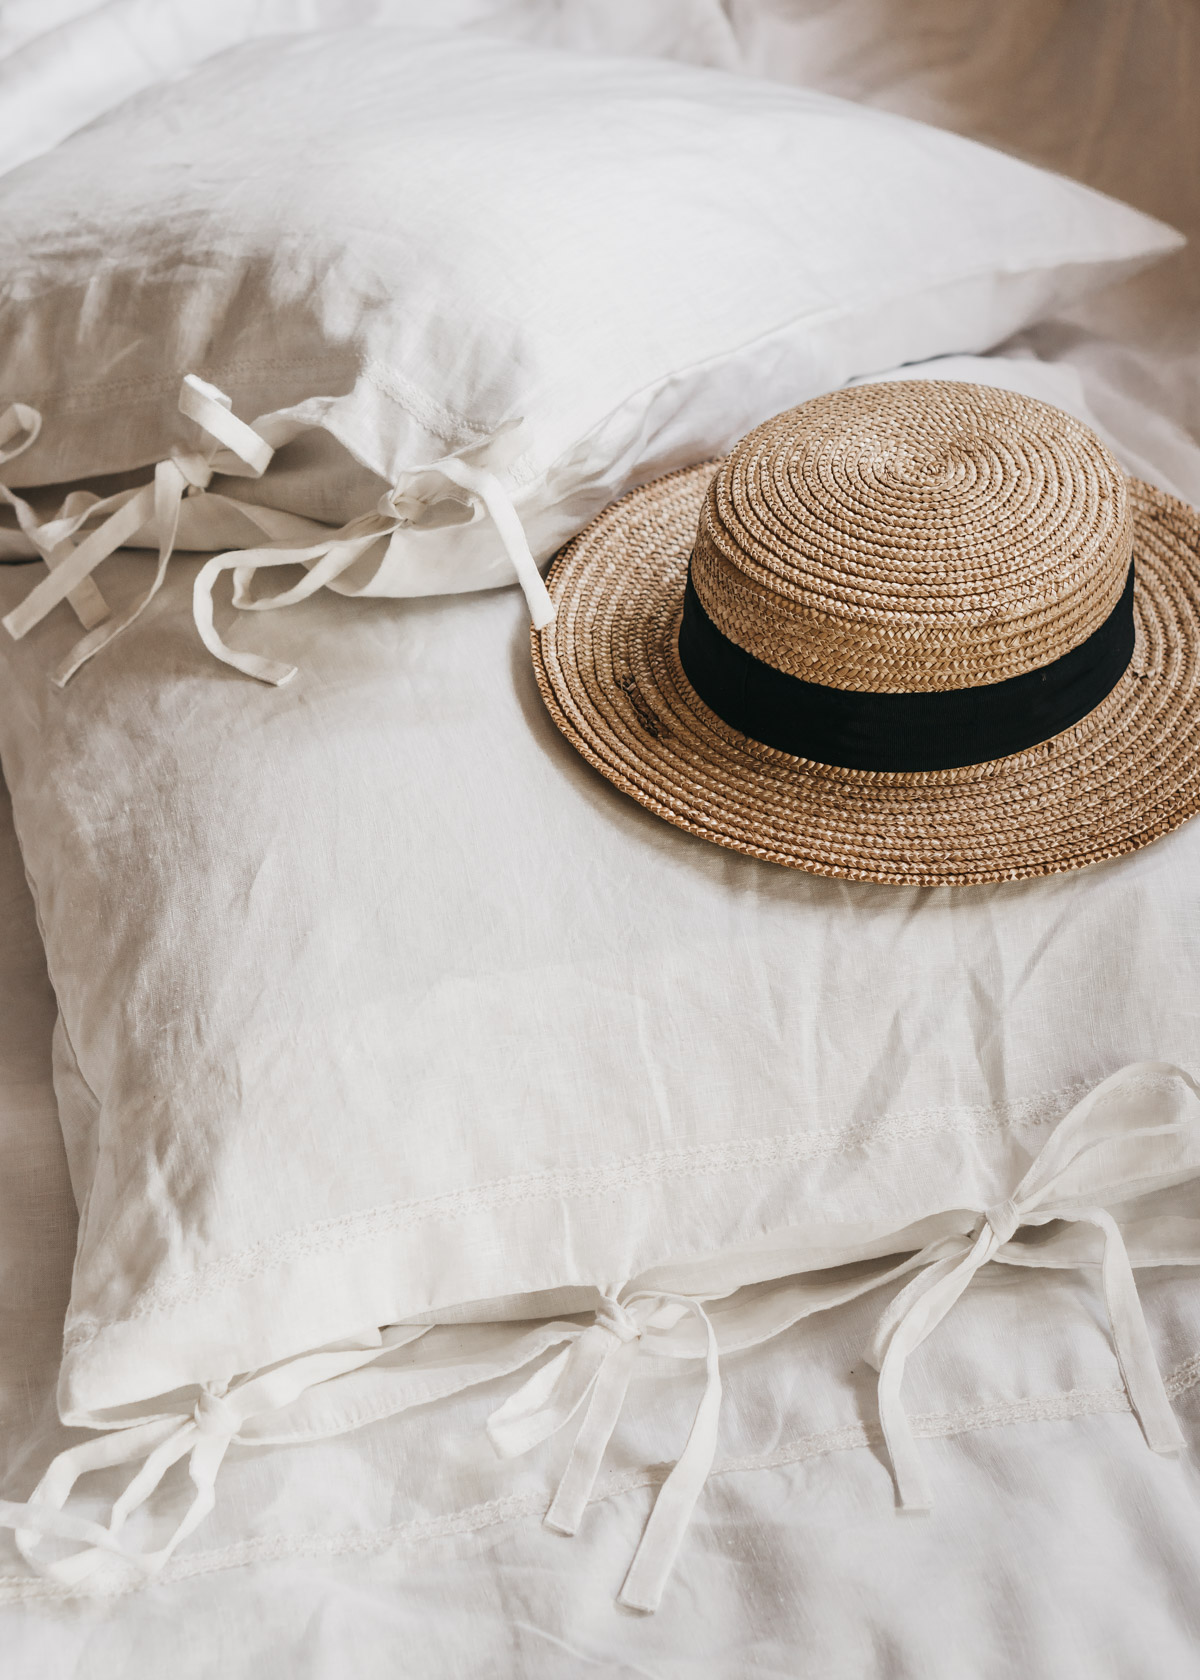 Keira-Mason-in-between-the-sheets-straw-hat.jpg